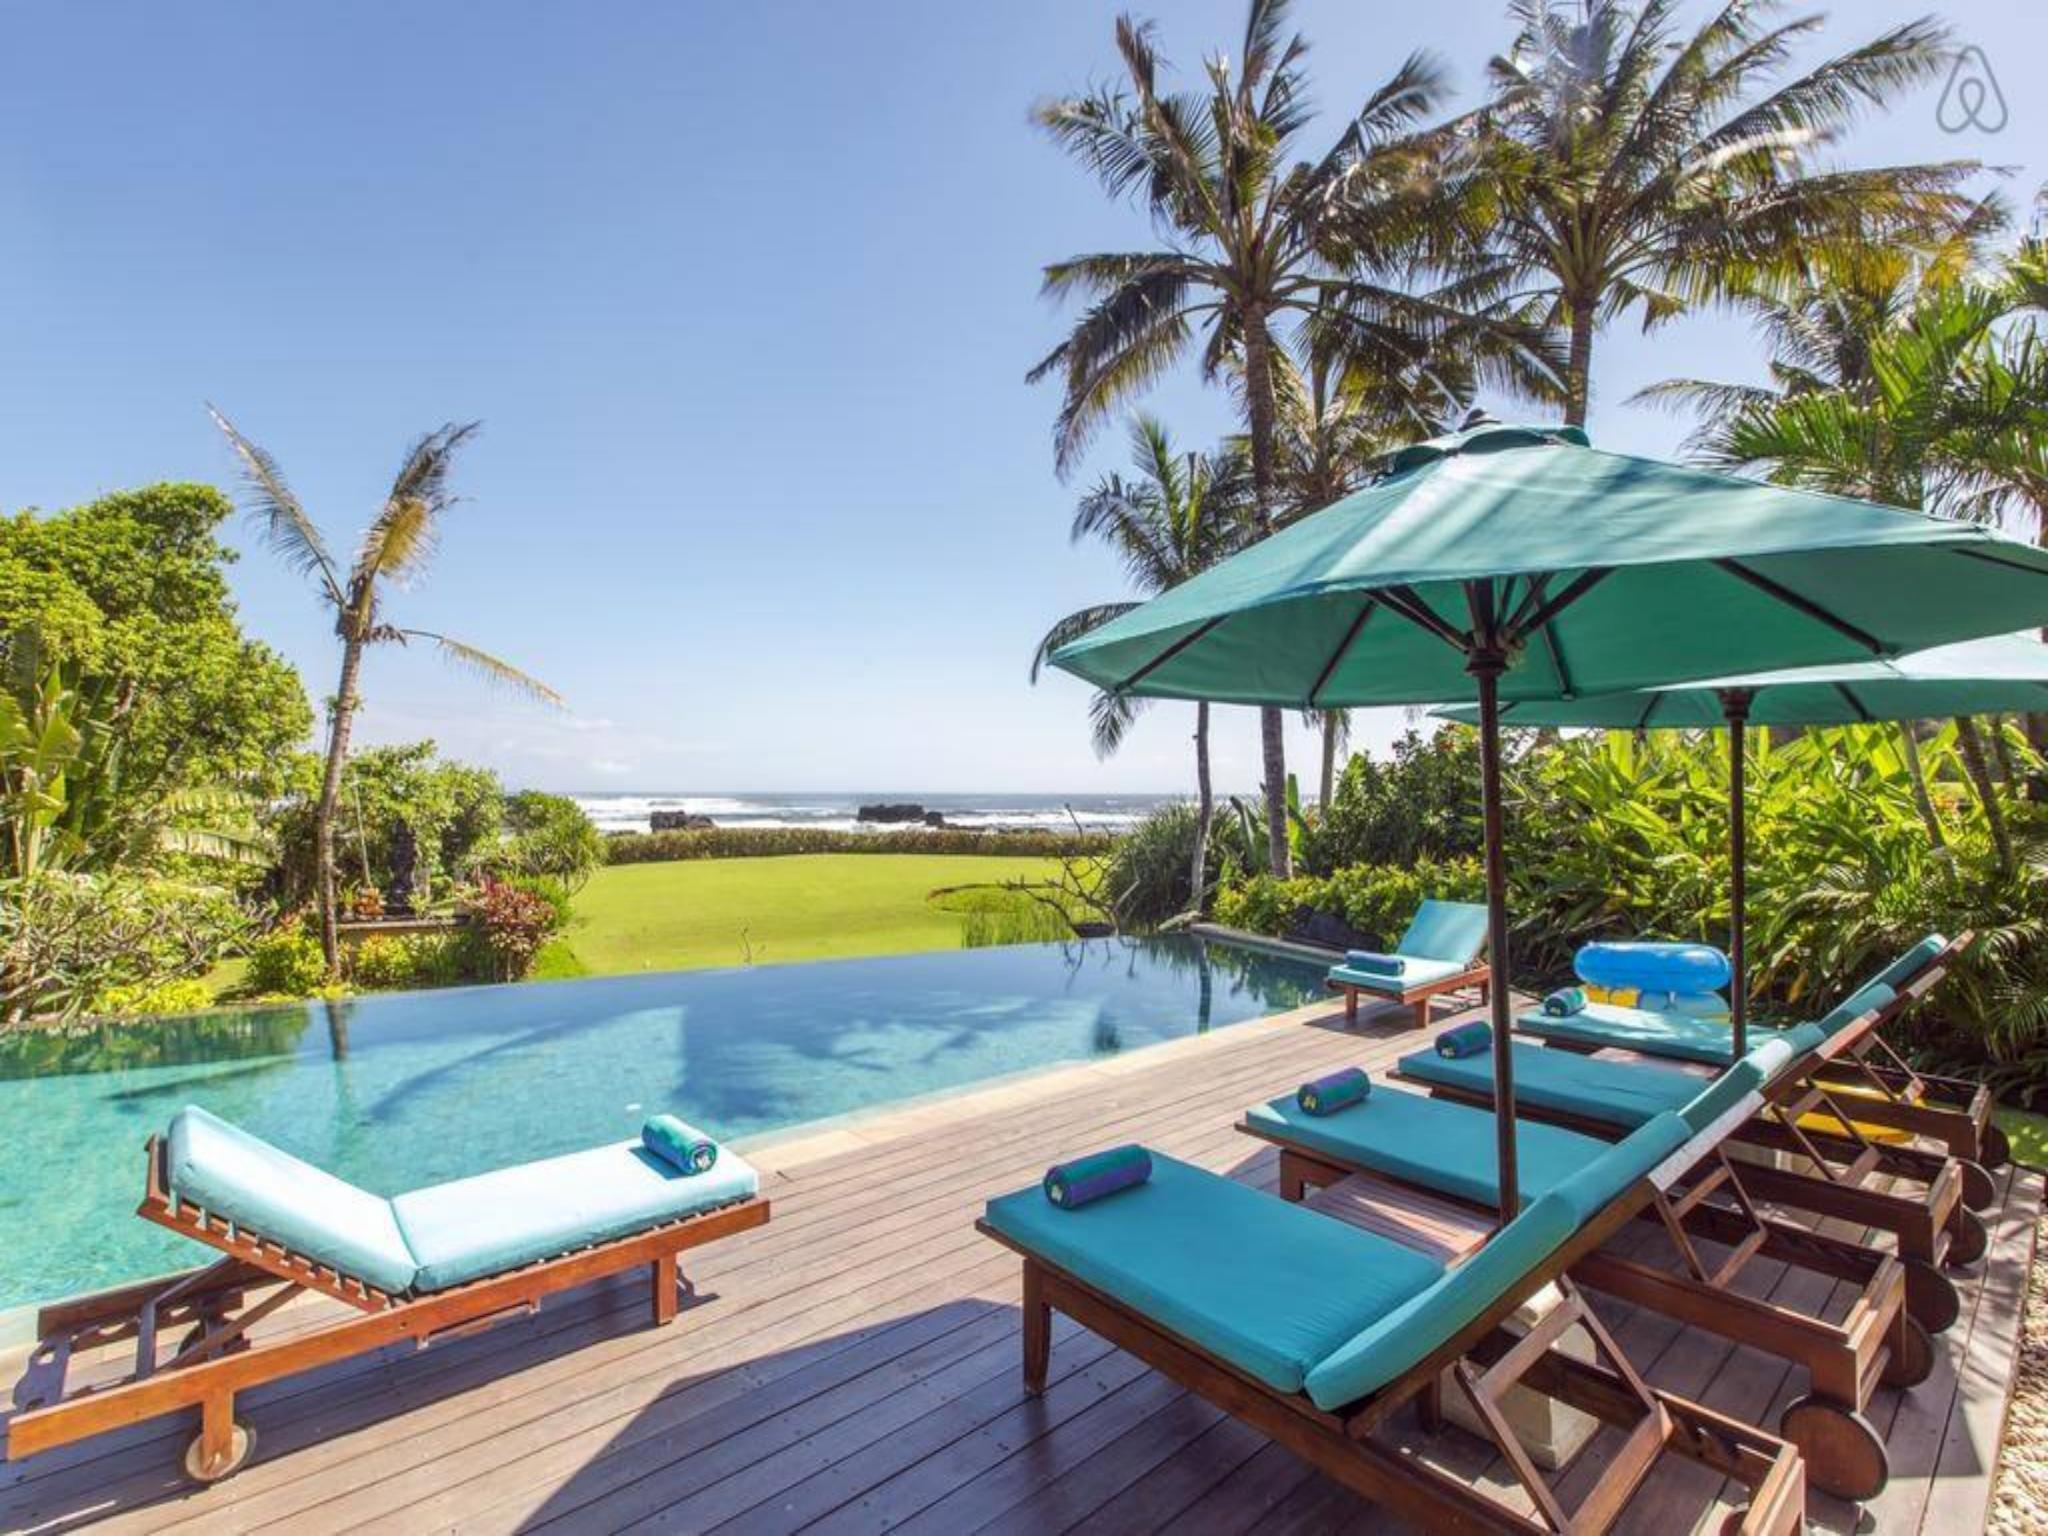 About 4 Bedroom Beach Front Villas at Canggu